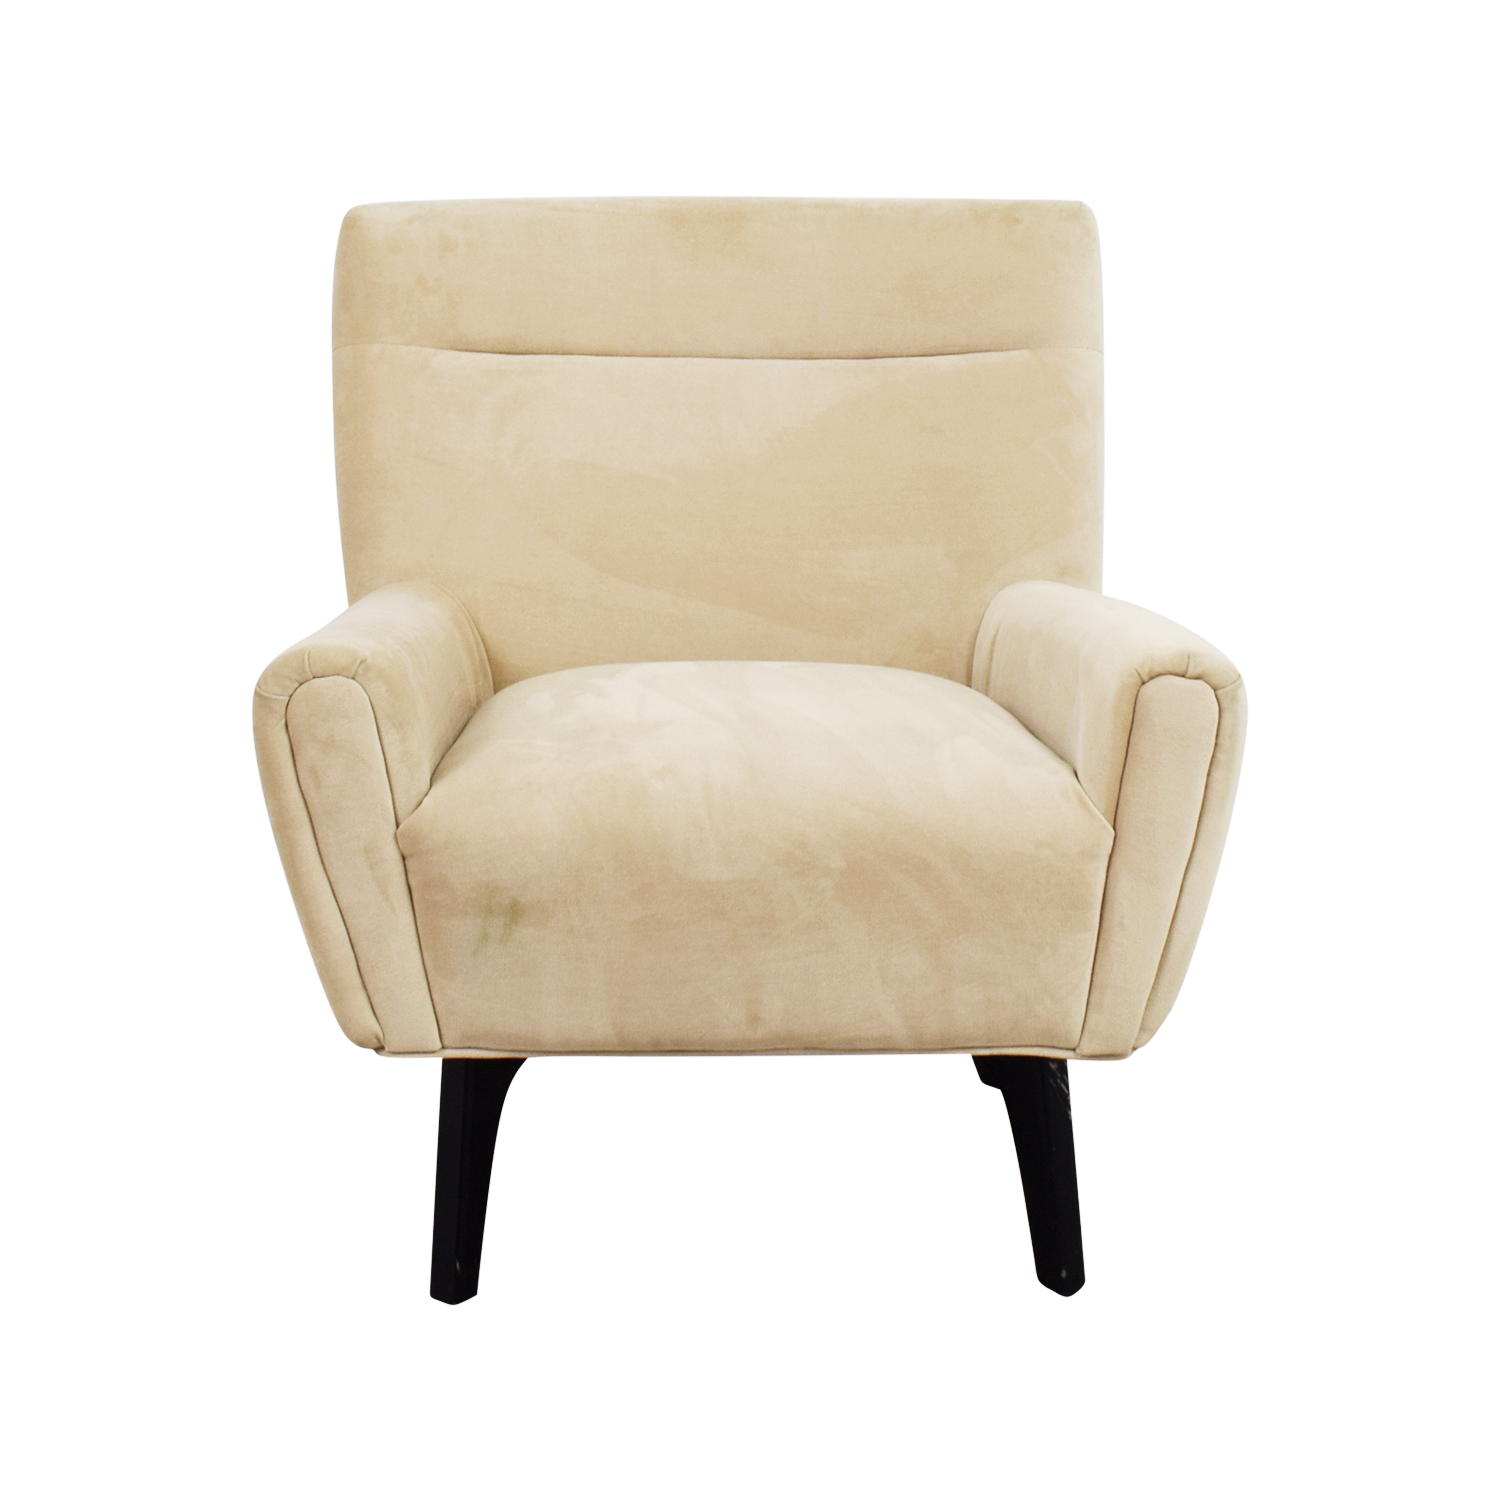 72 off target target tufted beige side armchair chairs for Cream armchair